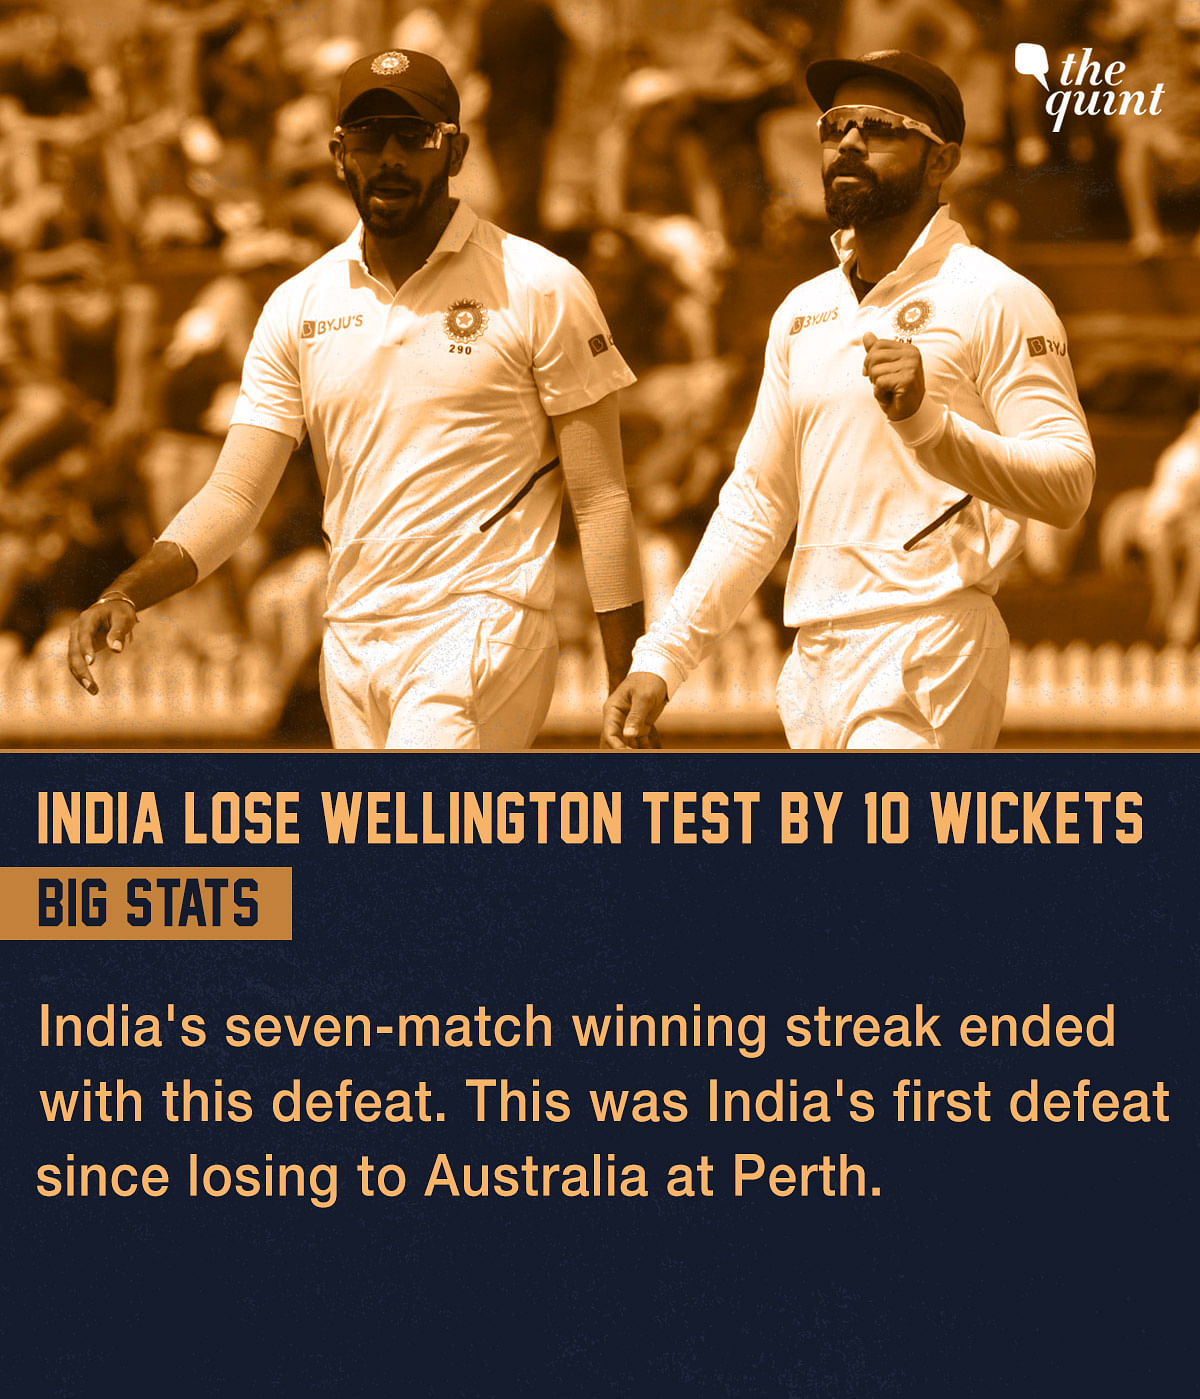 Stats: 100th Test Win For Kiwis, 1st Loss for India in Test C'ship